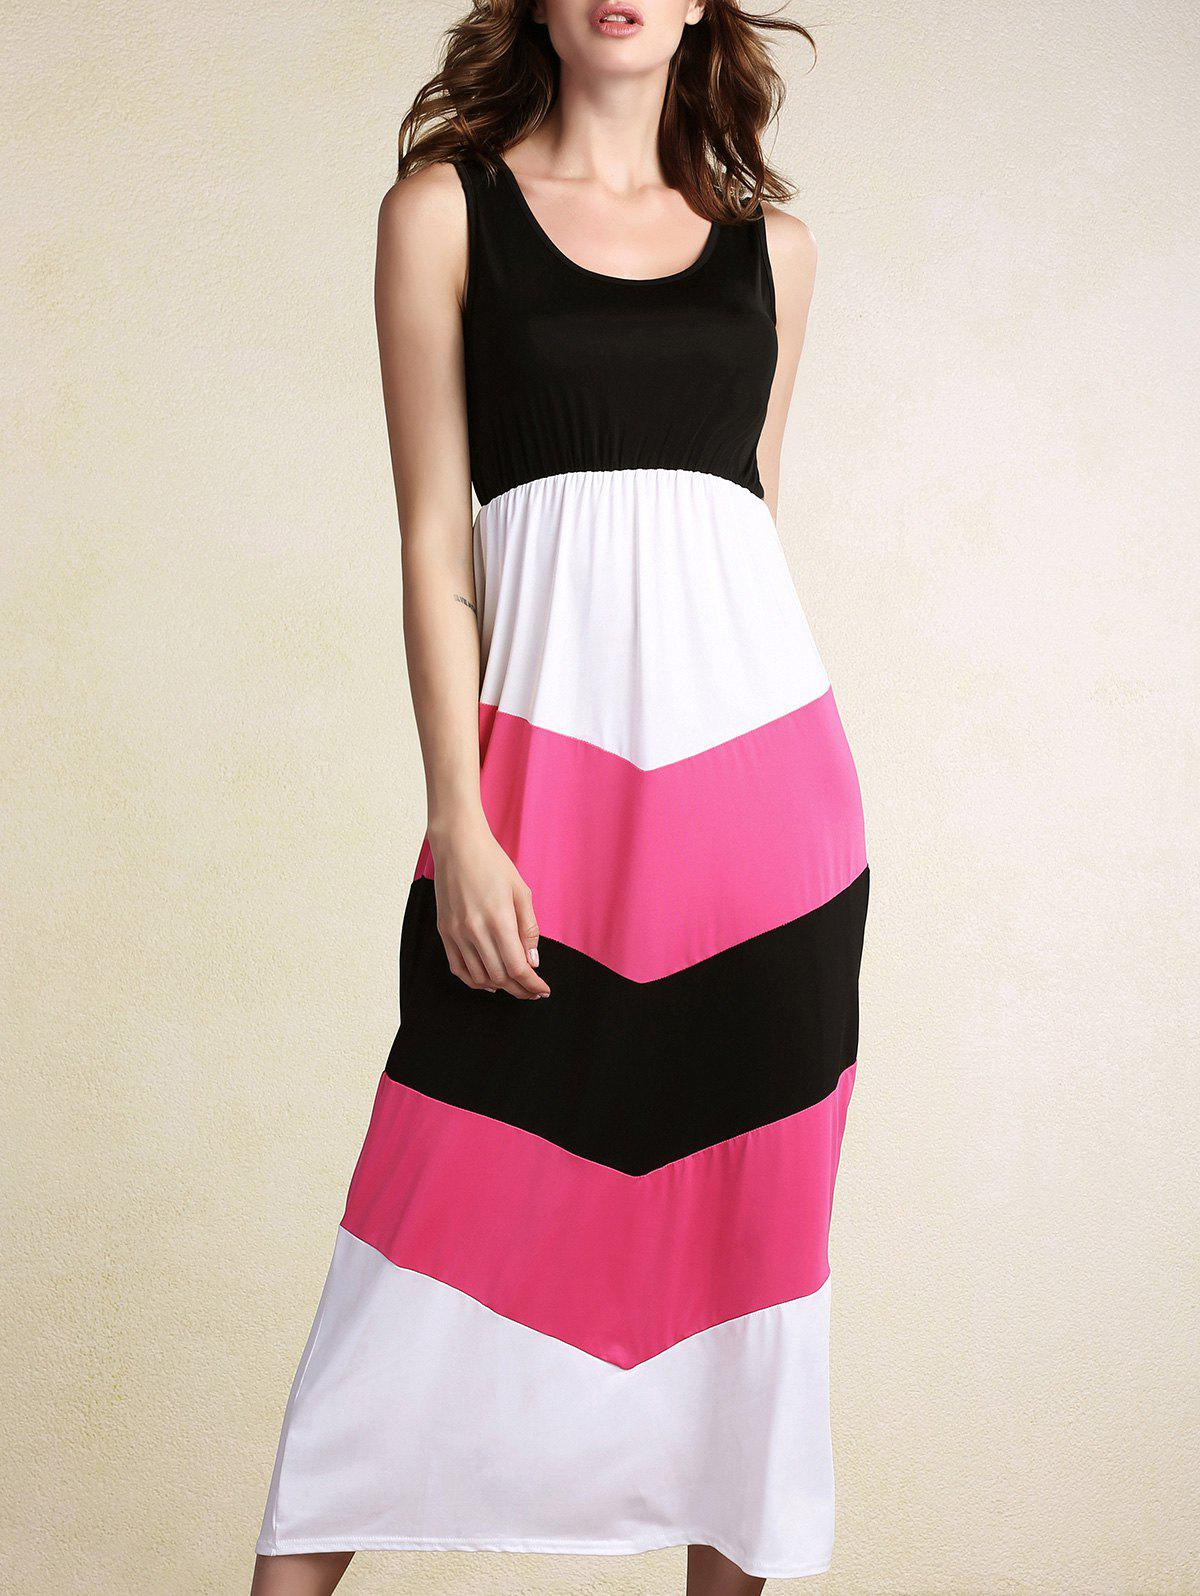 Sweet Women's Scoop Neck Sleeveless Color Block Patchwork Ankle Dress